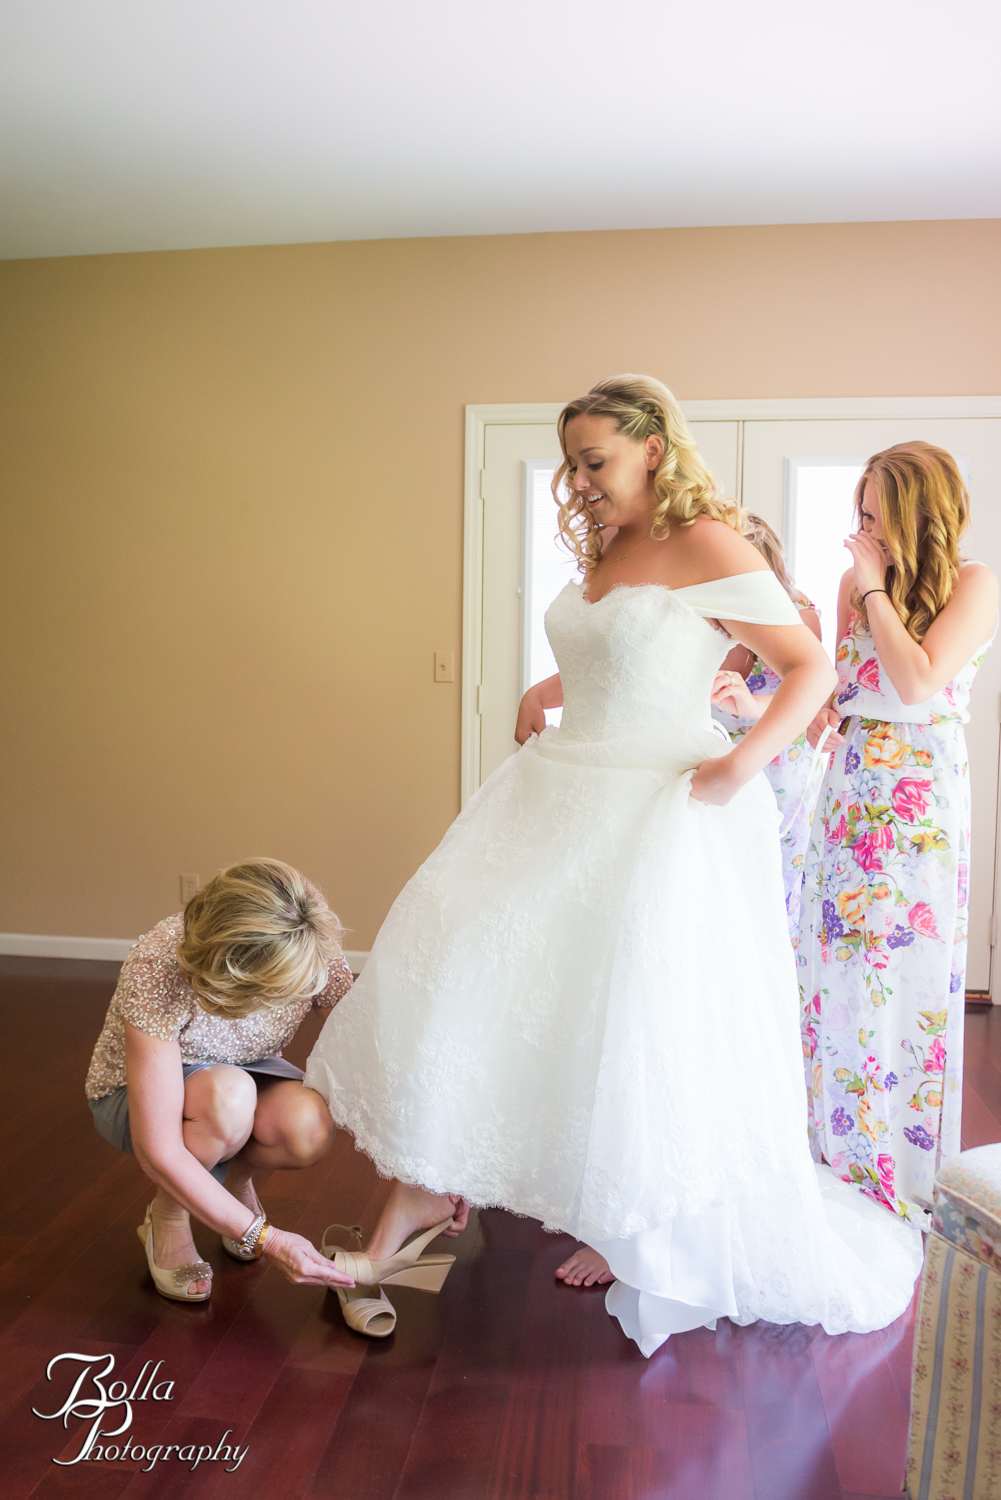 Bolla_Photography_St_Louis_wedding_photographer-0055.jpg